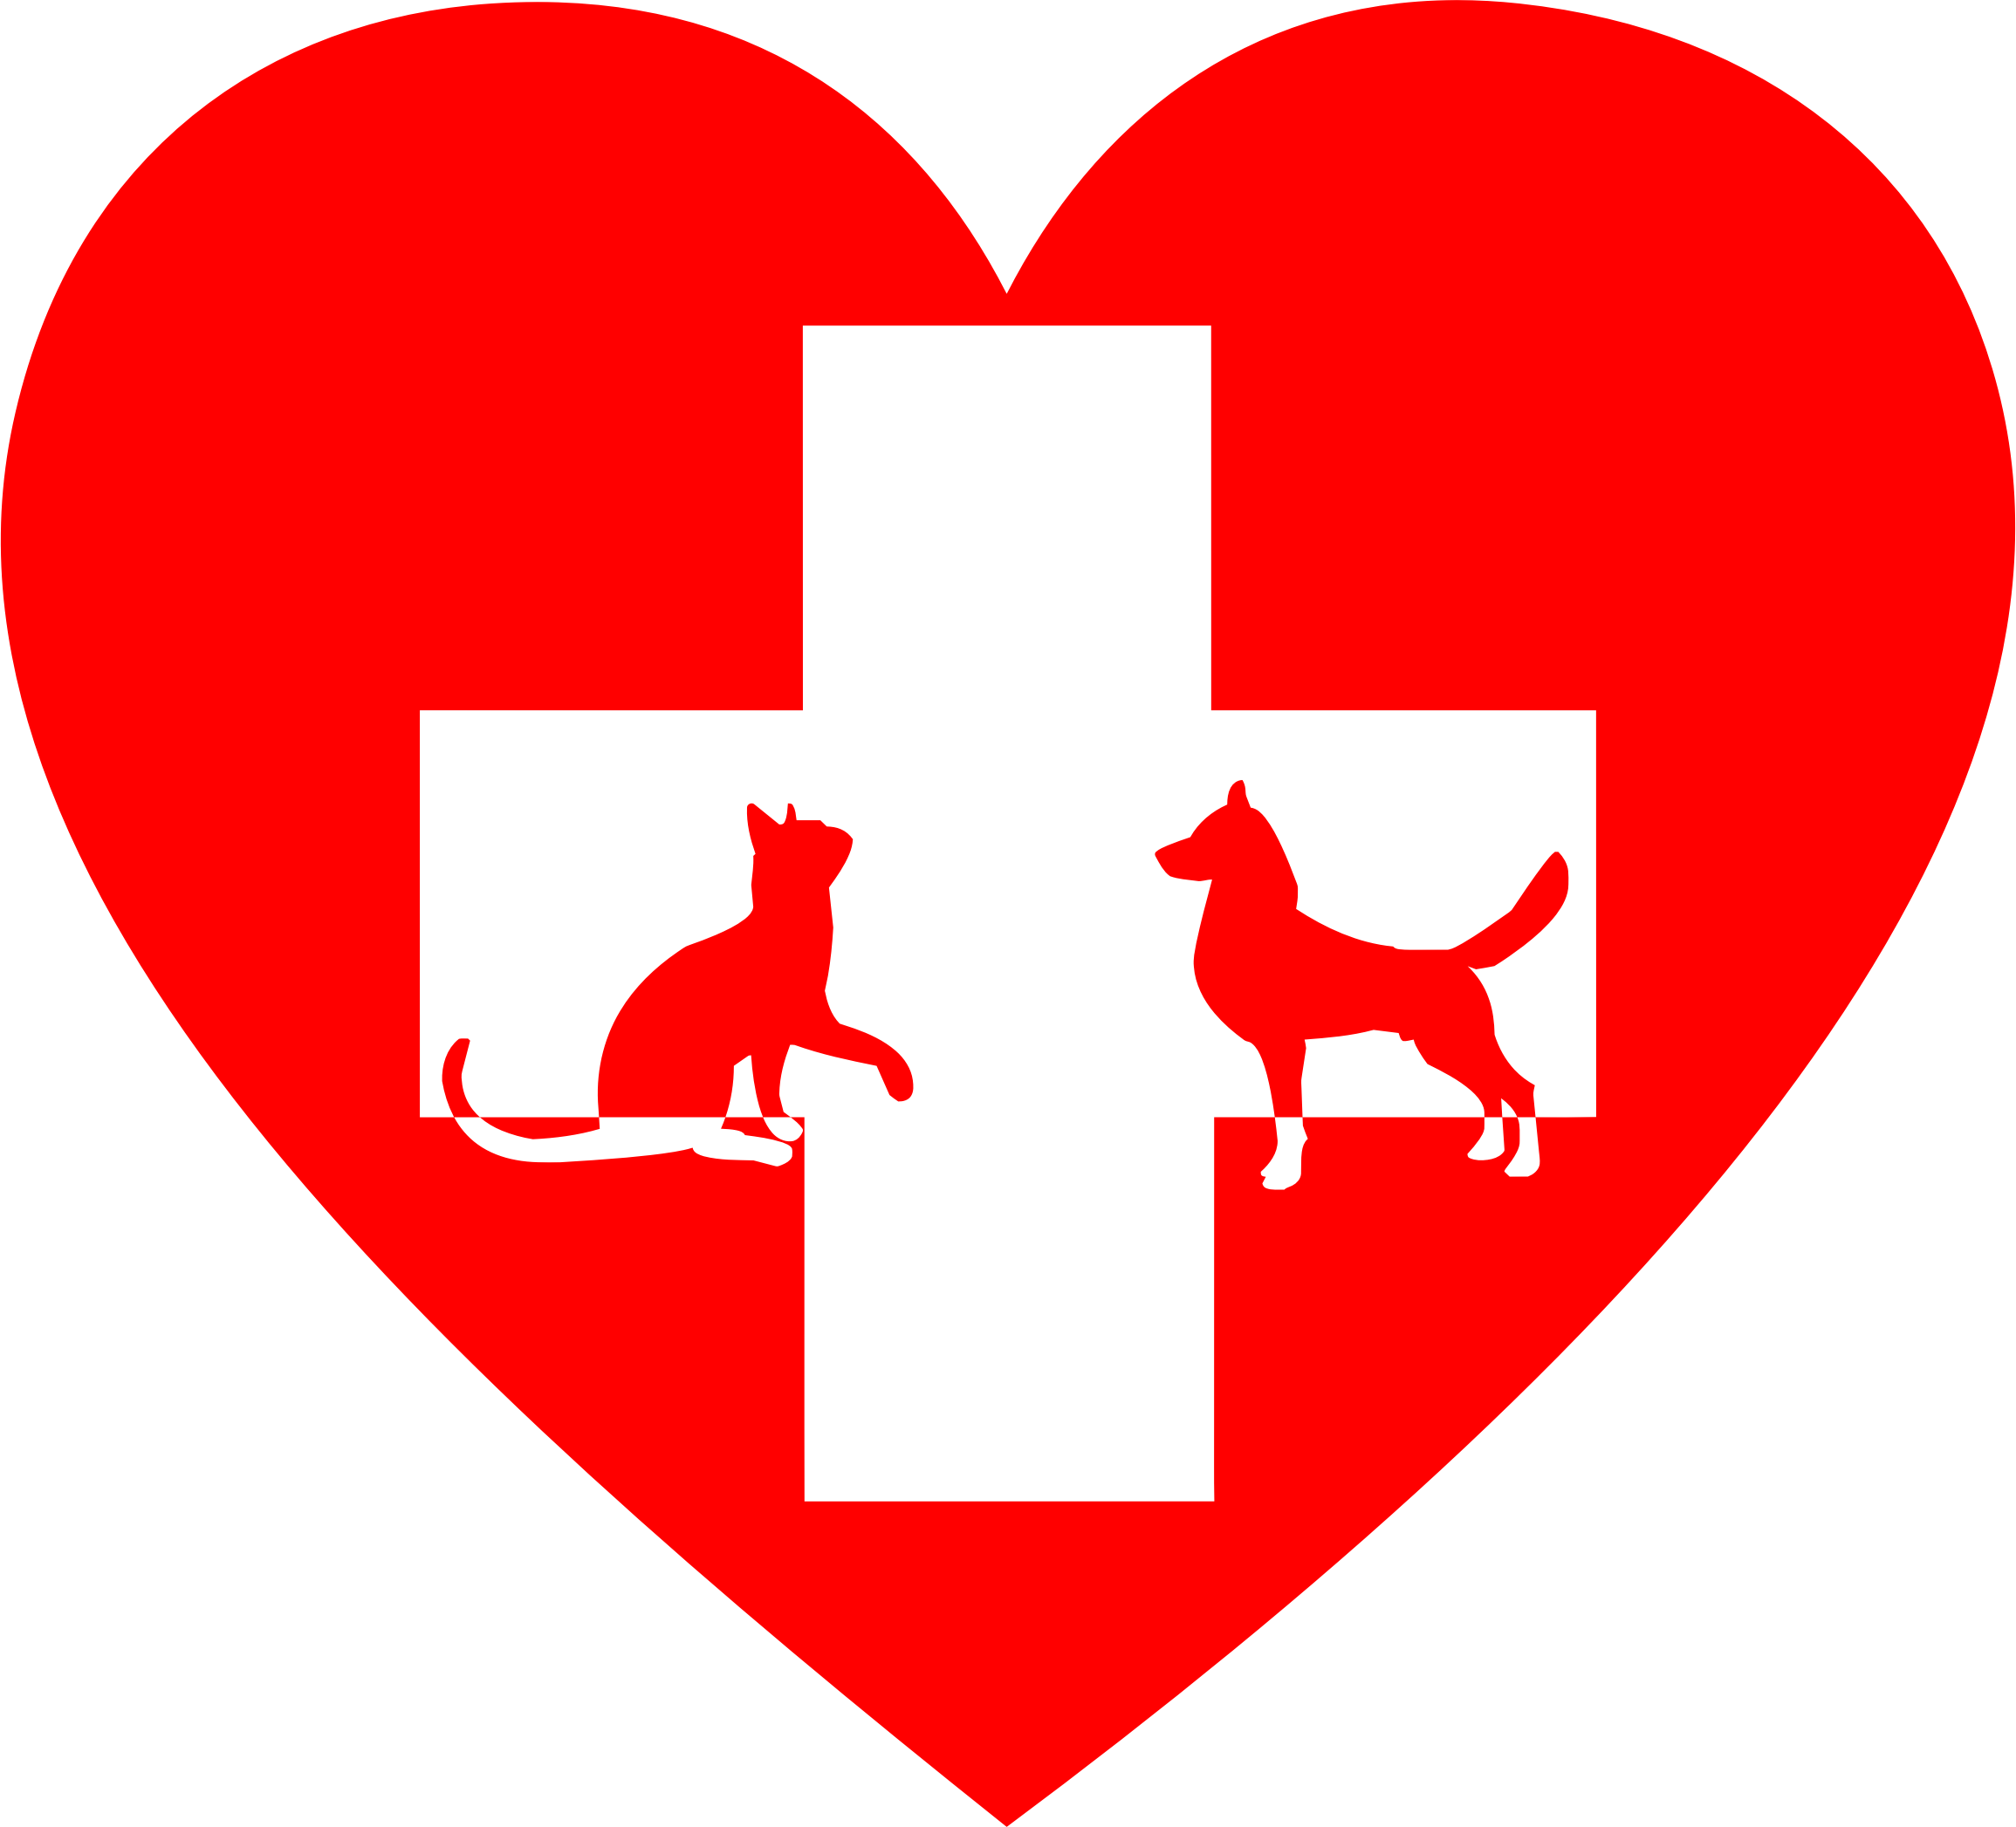 Veterinary heart big image. Health clipart first aid cross